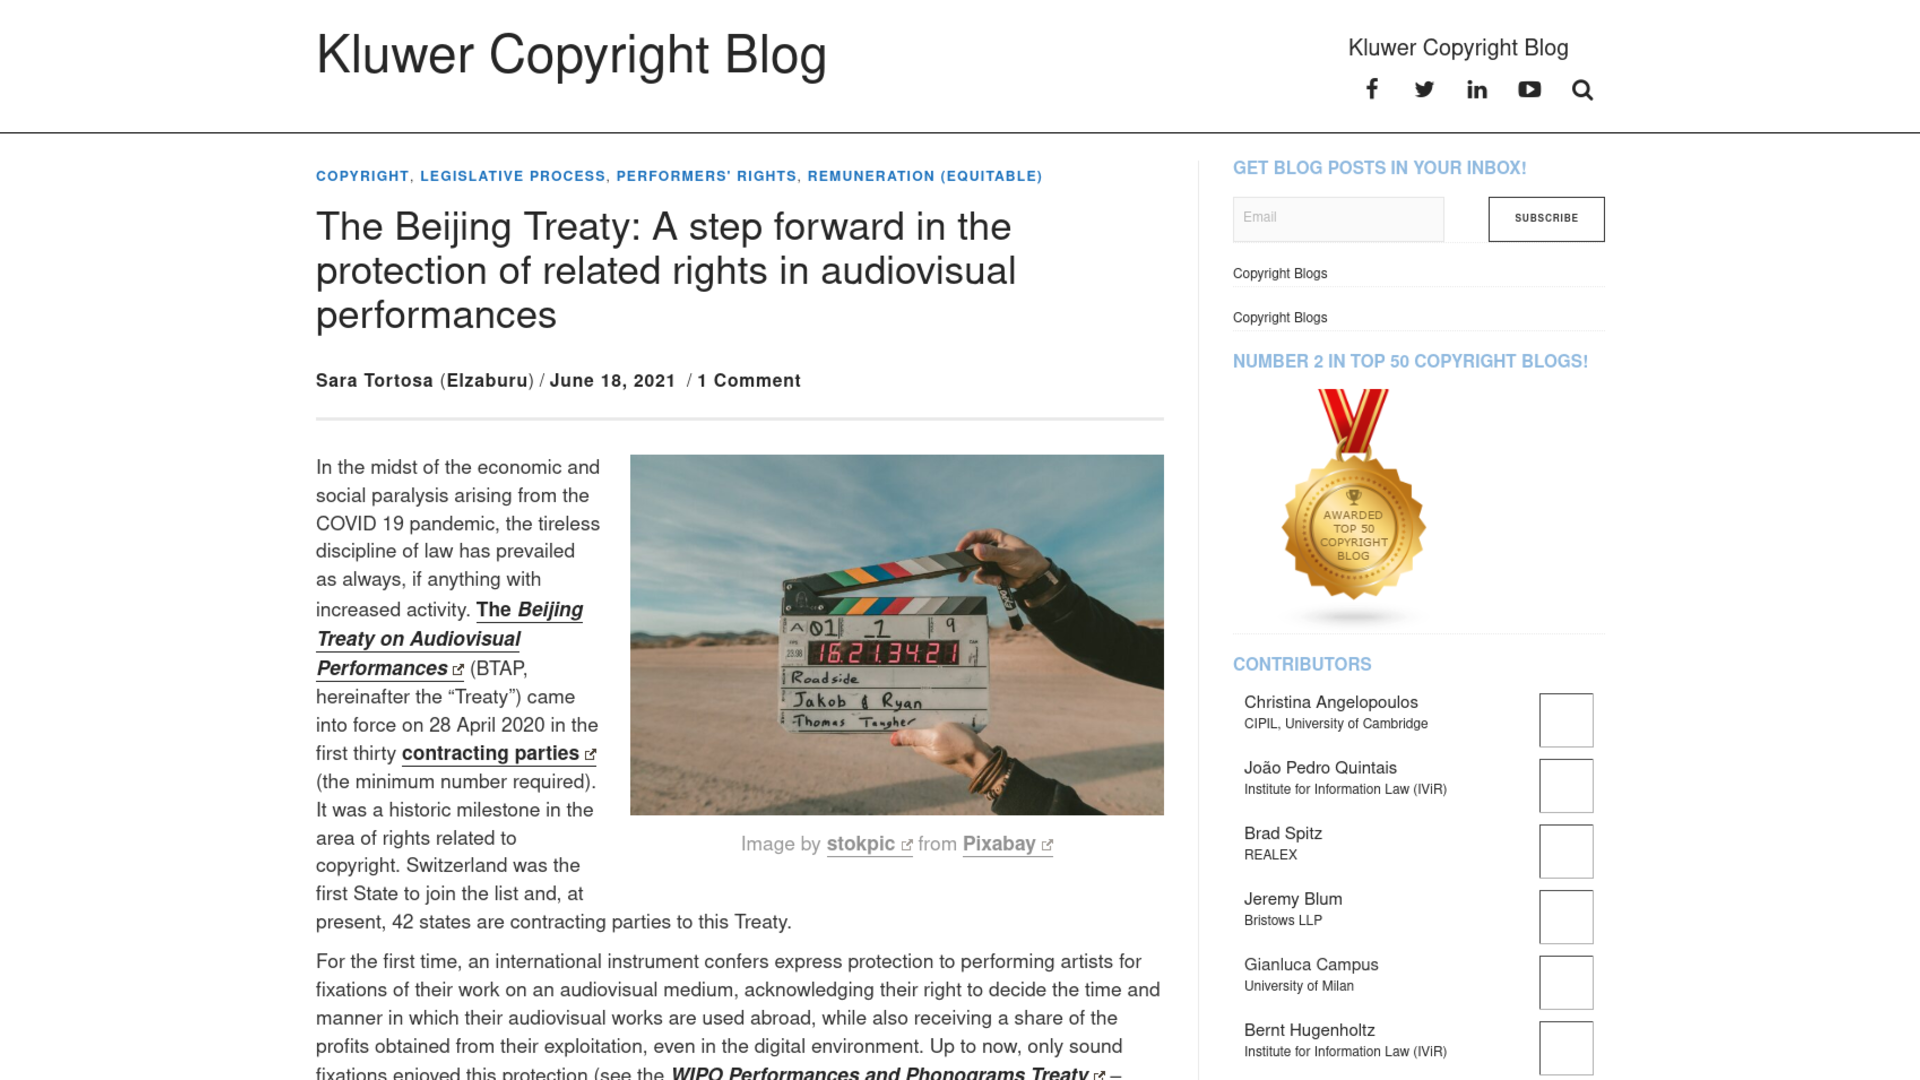 Fairness Rocks News The Beijing Treaty: A step forward in the protection of related rights in audiovisual performances